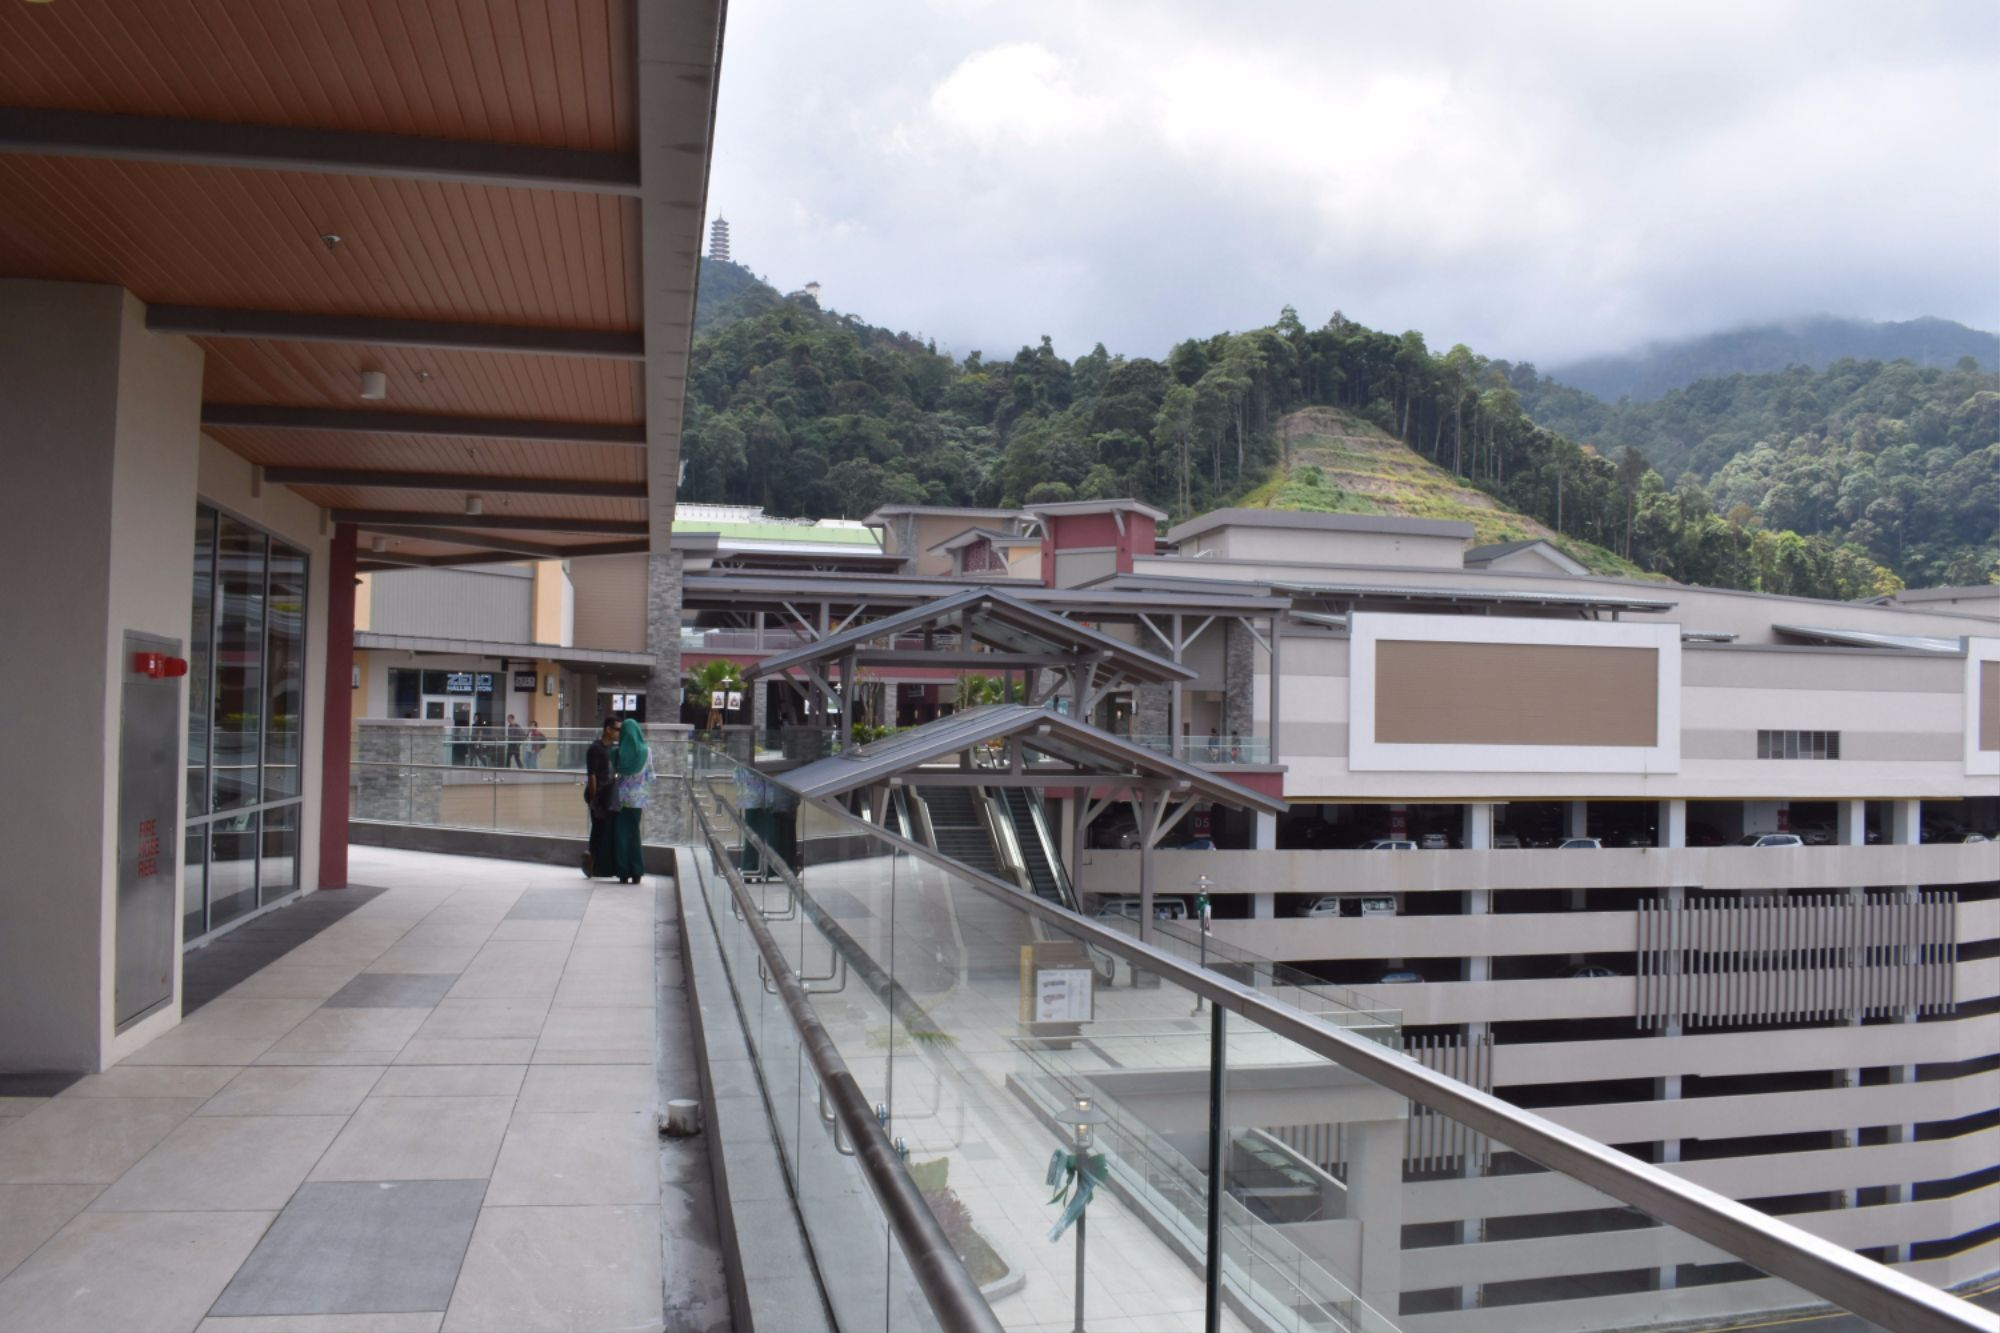 genting premium outlet at genting highlands